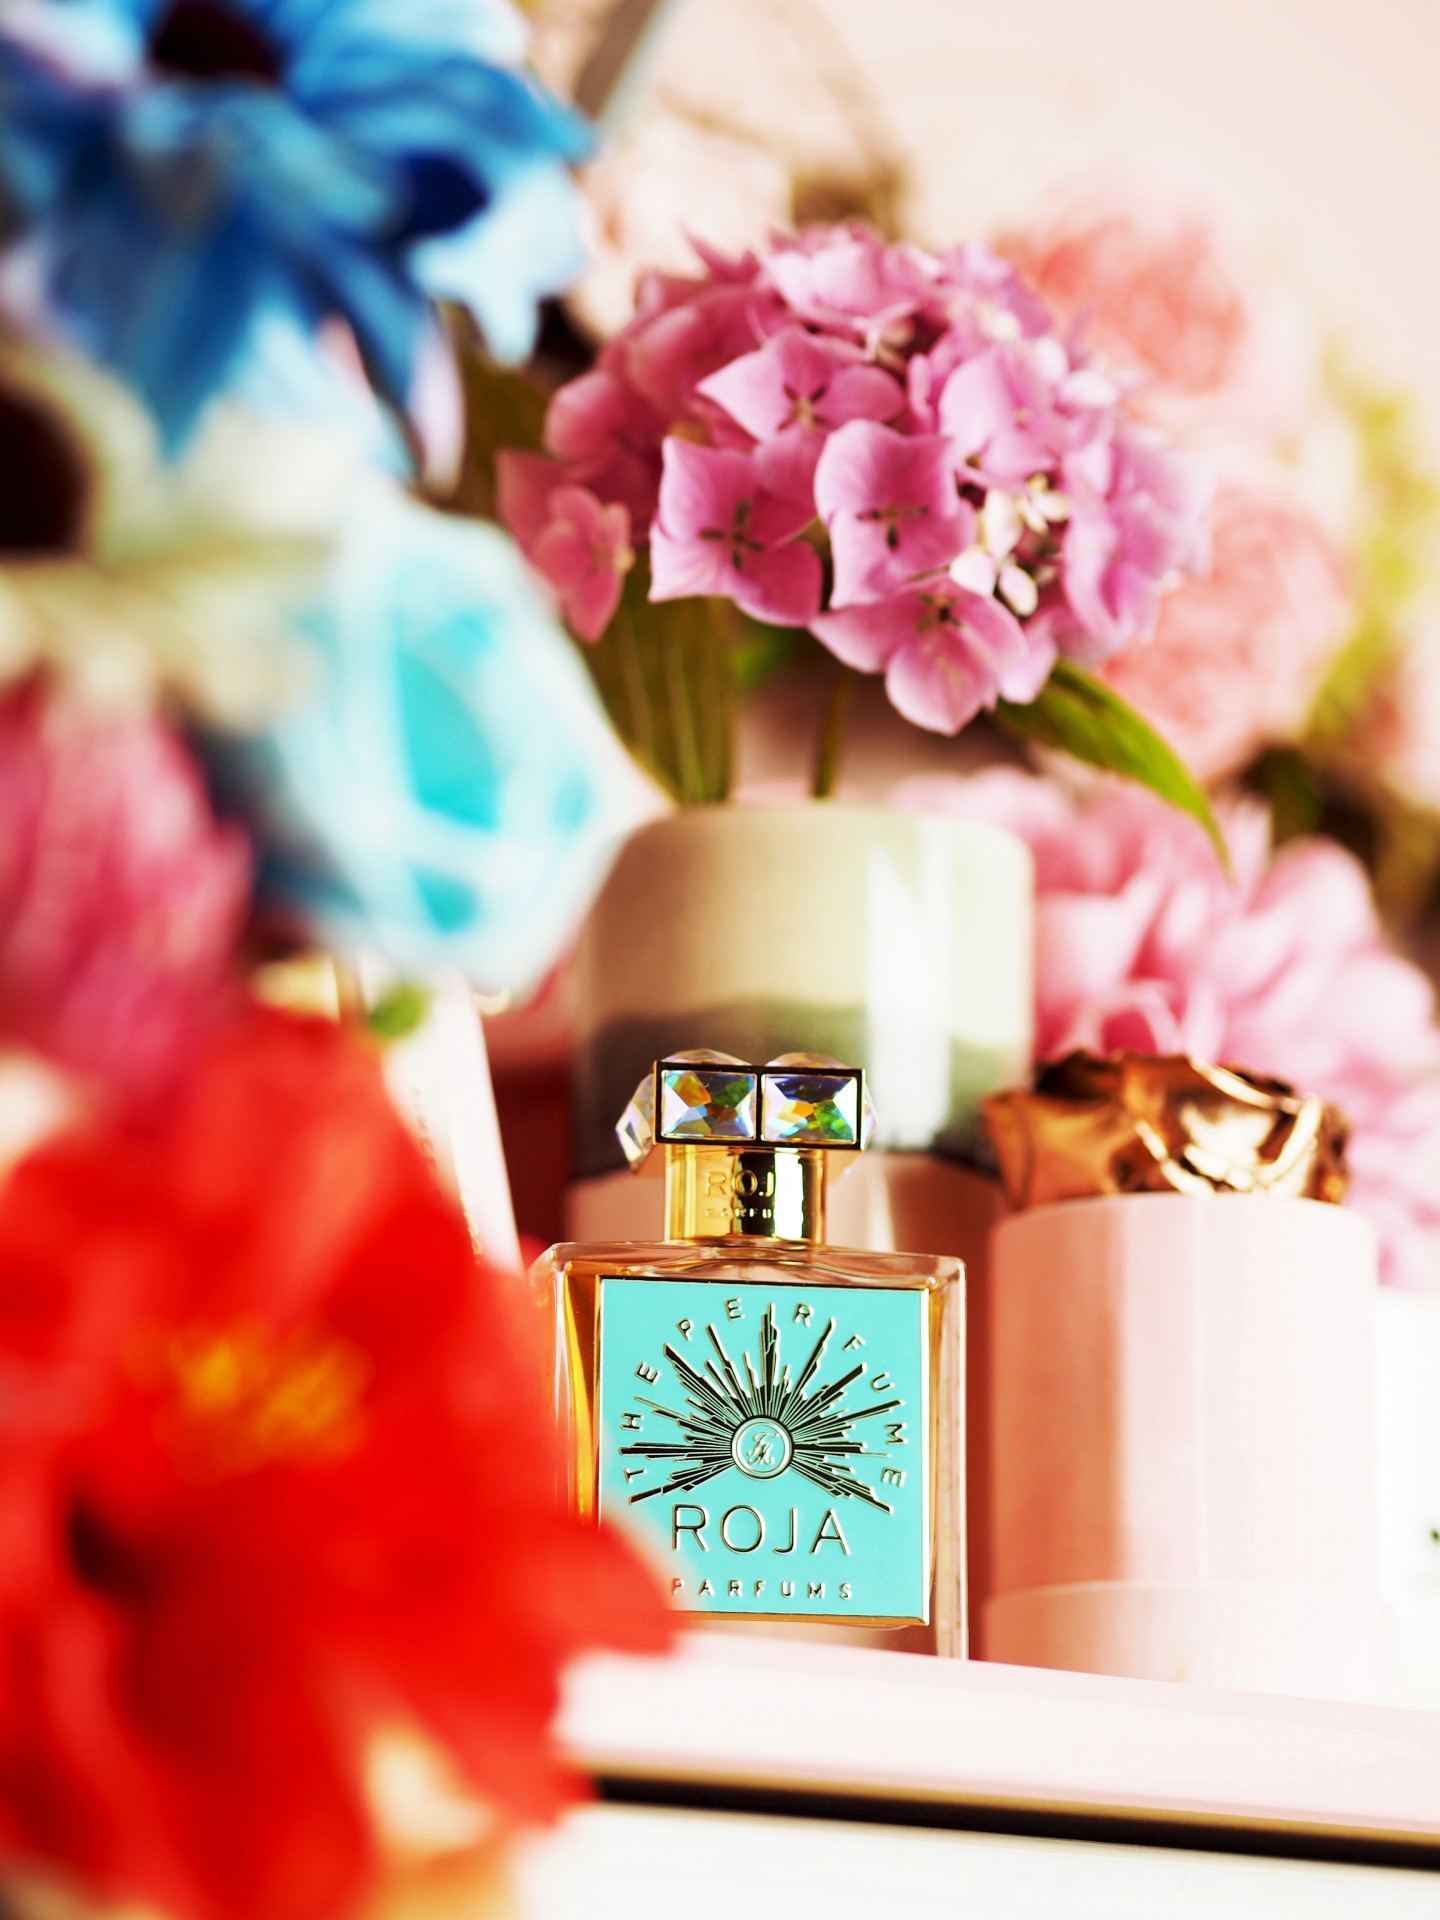 Roja Parfums Fortnum & Mason The Perfume review fragrance